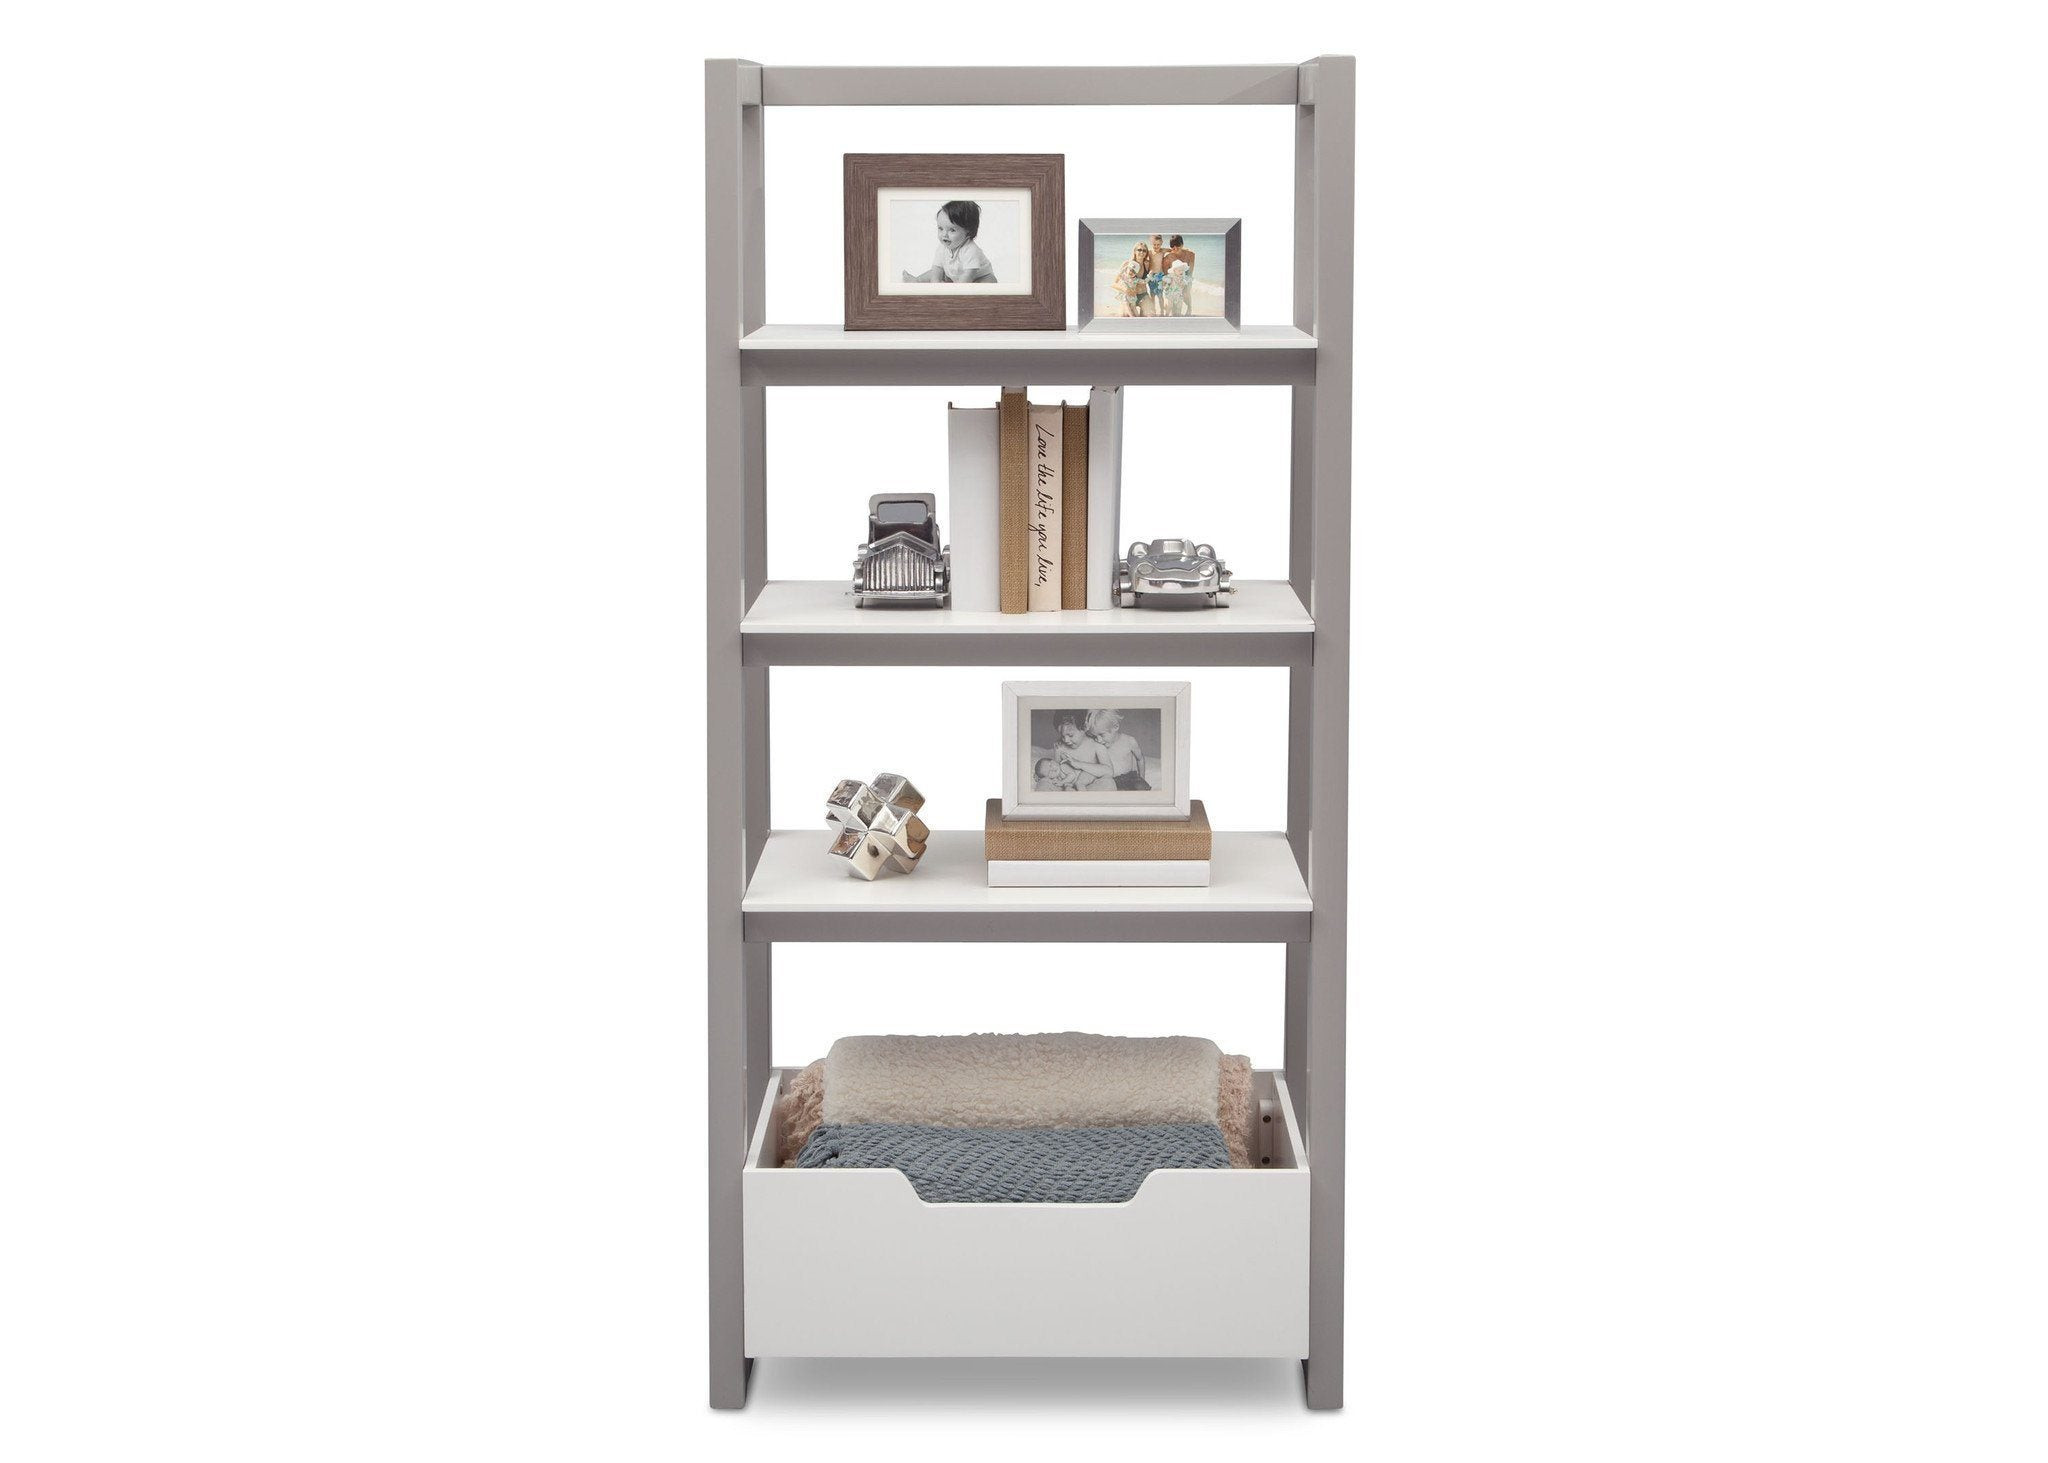 Delta Children Bianca with Grey (166) Gateway Ladder Shelf, Front View with Props a6a